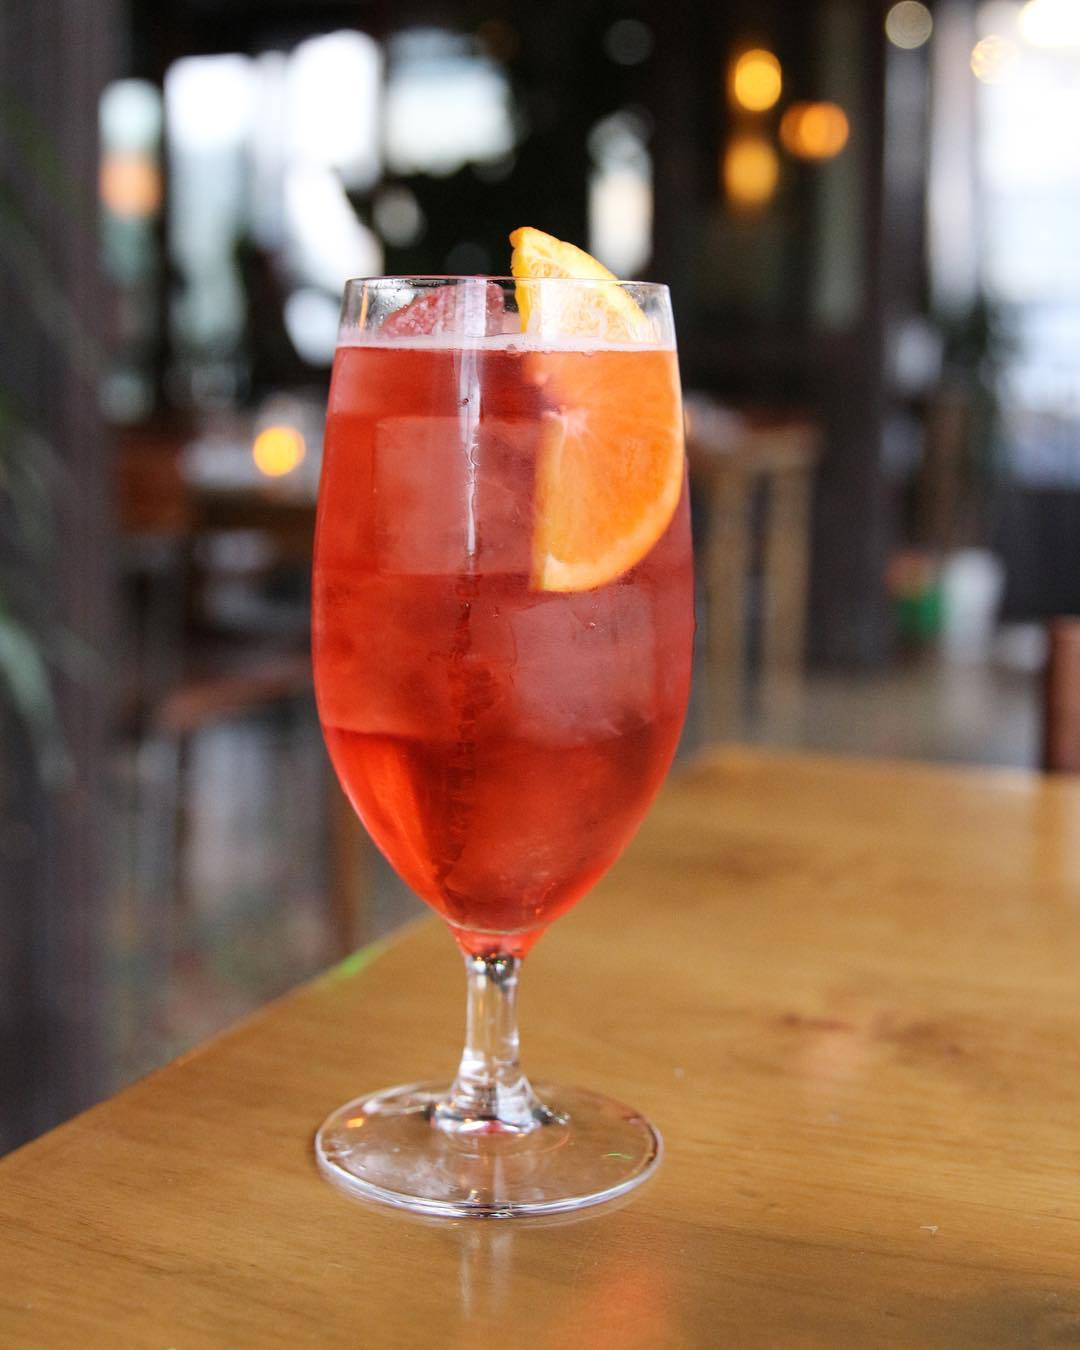 Negroni Sbagliato at DAMA | Photo: @damafashiondistrict, Instagram